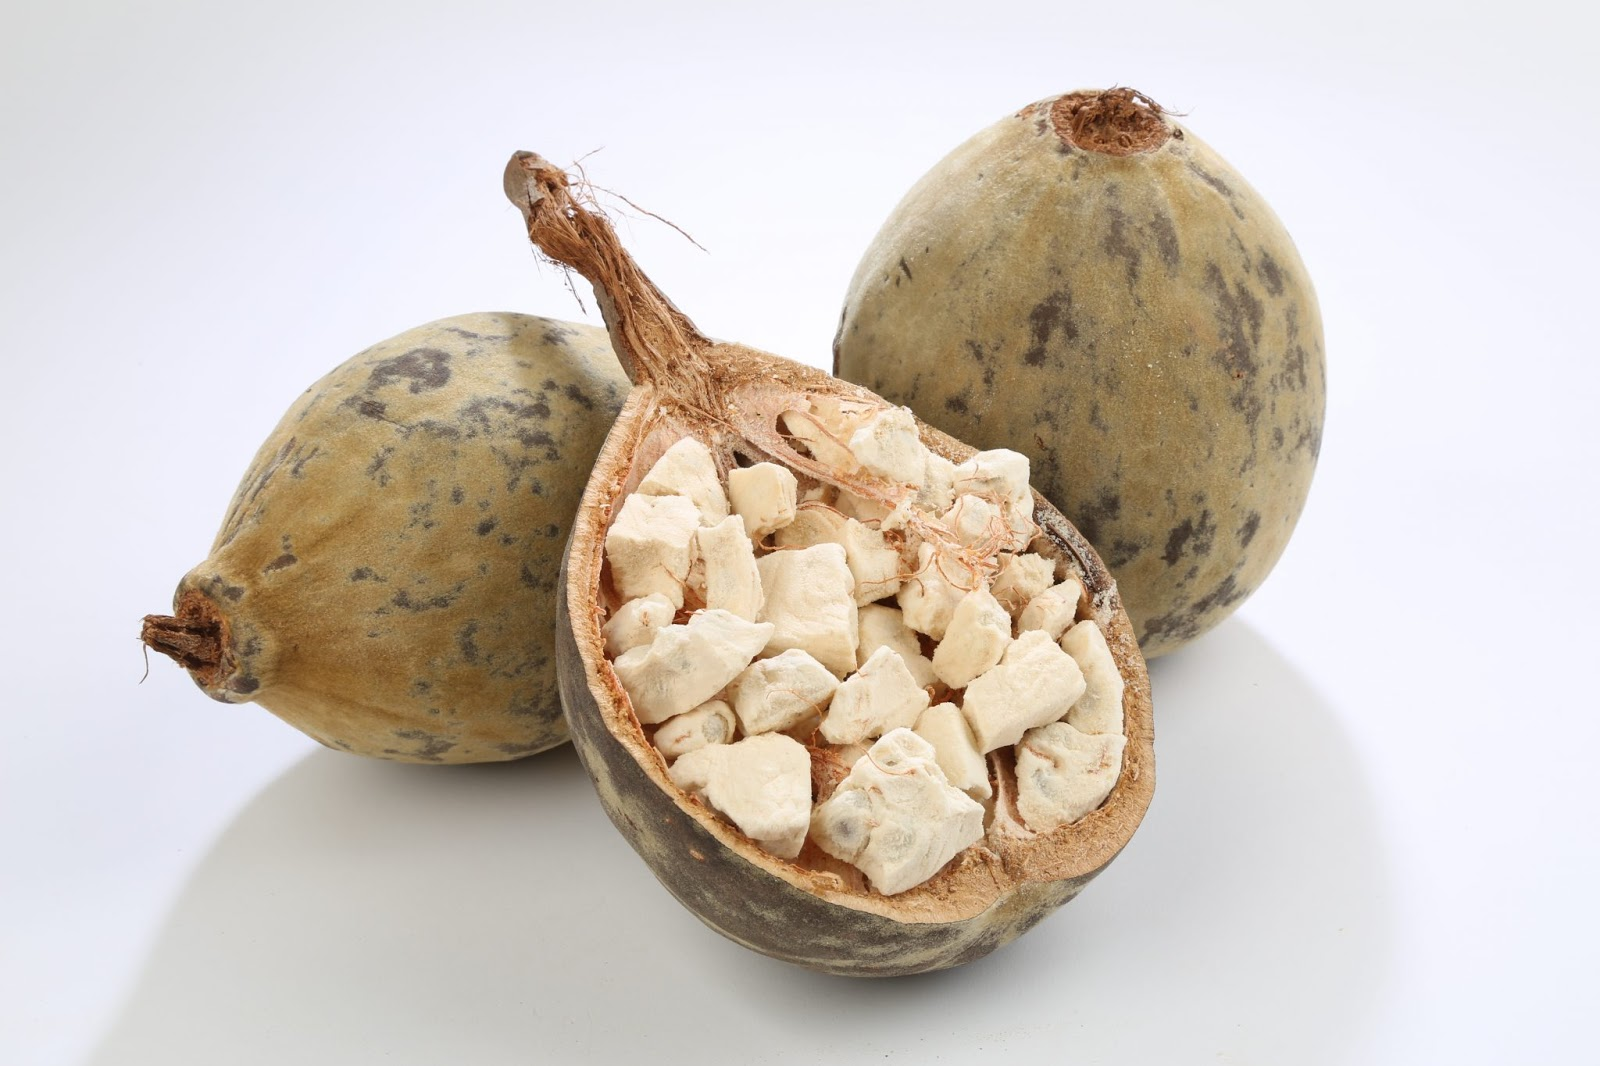 Baobab fruit is fruit from baobab tree that is native to Africa continent through the variety of this fruit also found in Australia.